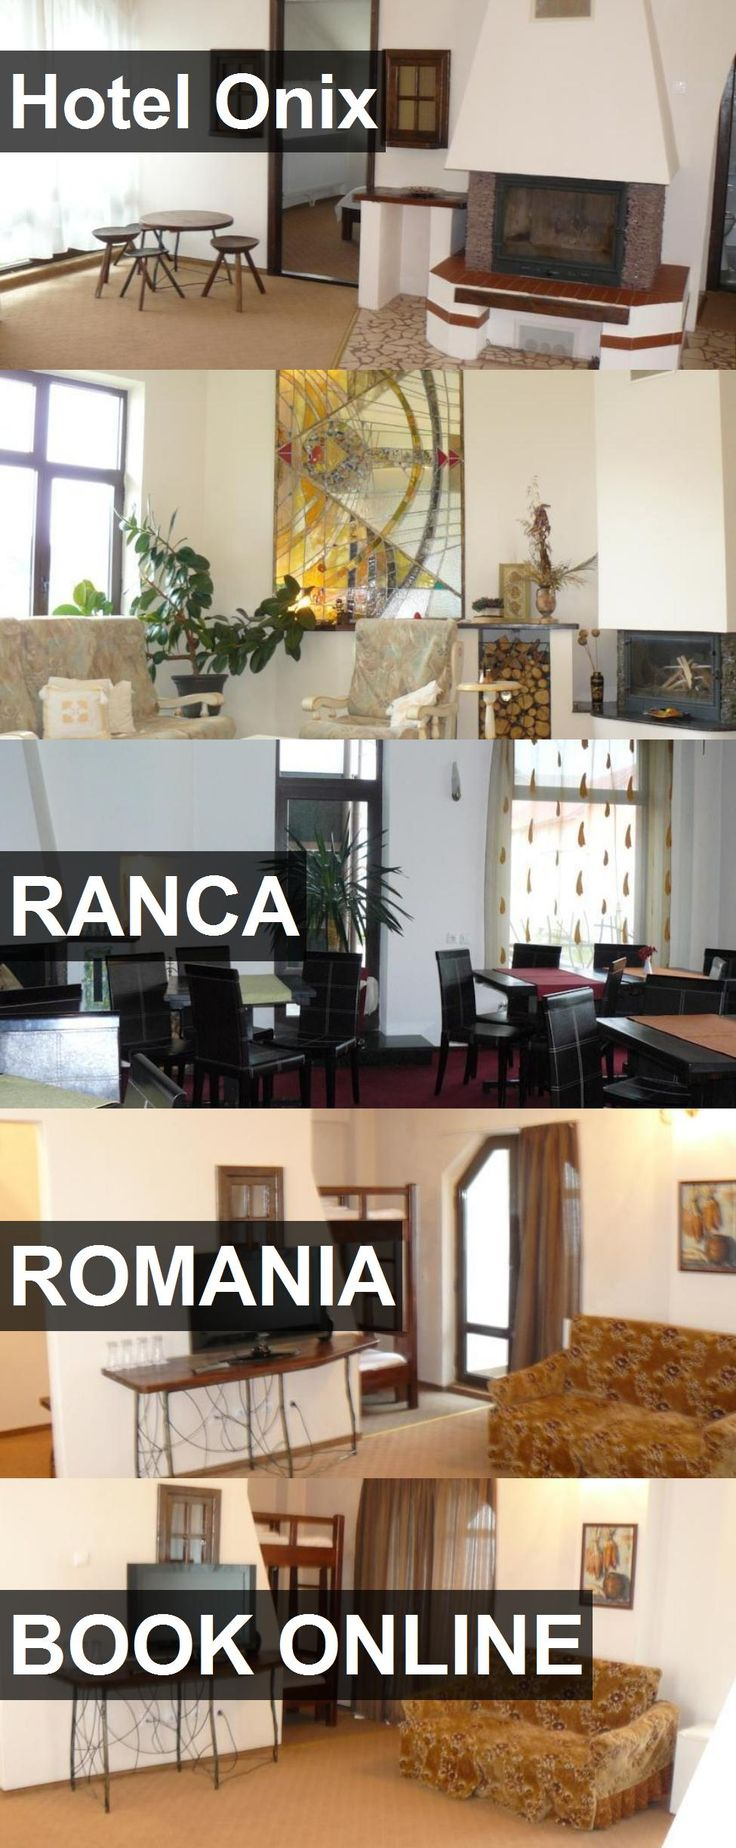 Hotel Onix in Ranca, Romania. For more information, photos, reviews and best prices please follow the link. #Romania #Ranca #travel #vacation #hotel